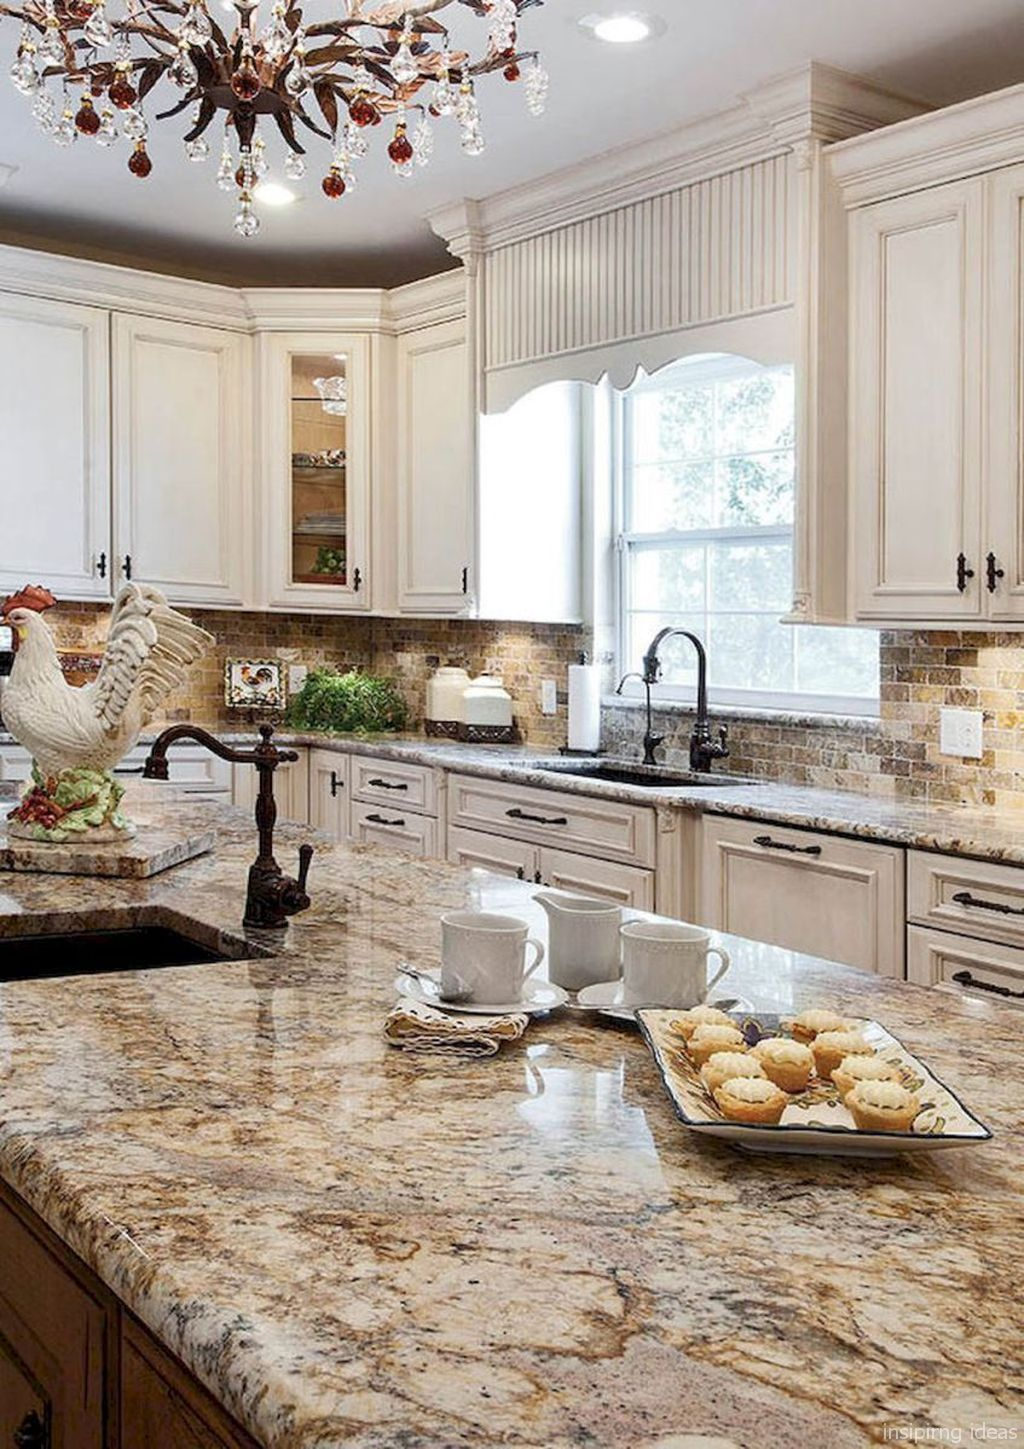 Lovelyving Architecture And Design Ideas Kitchen Design Country Kitchen Designs Kitchen Remodel